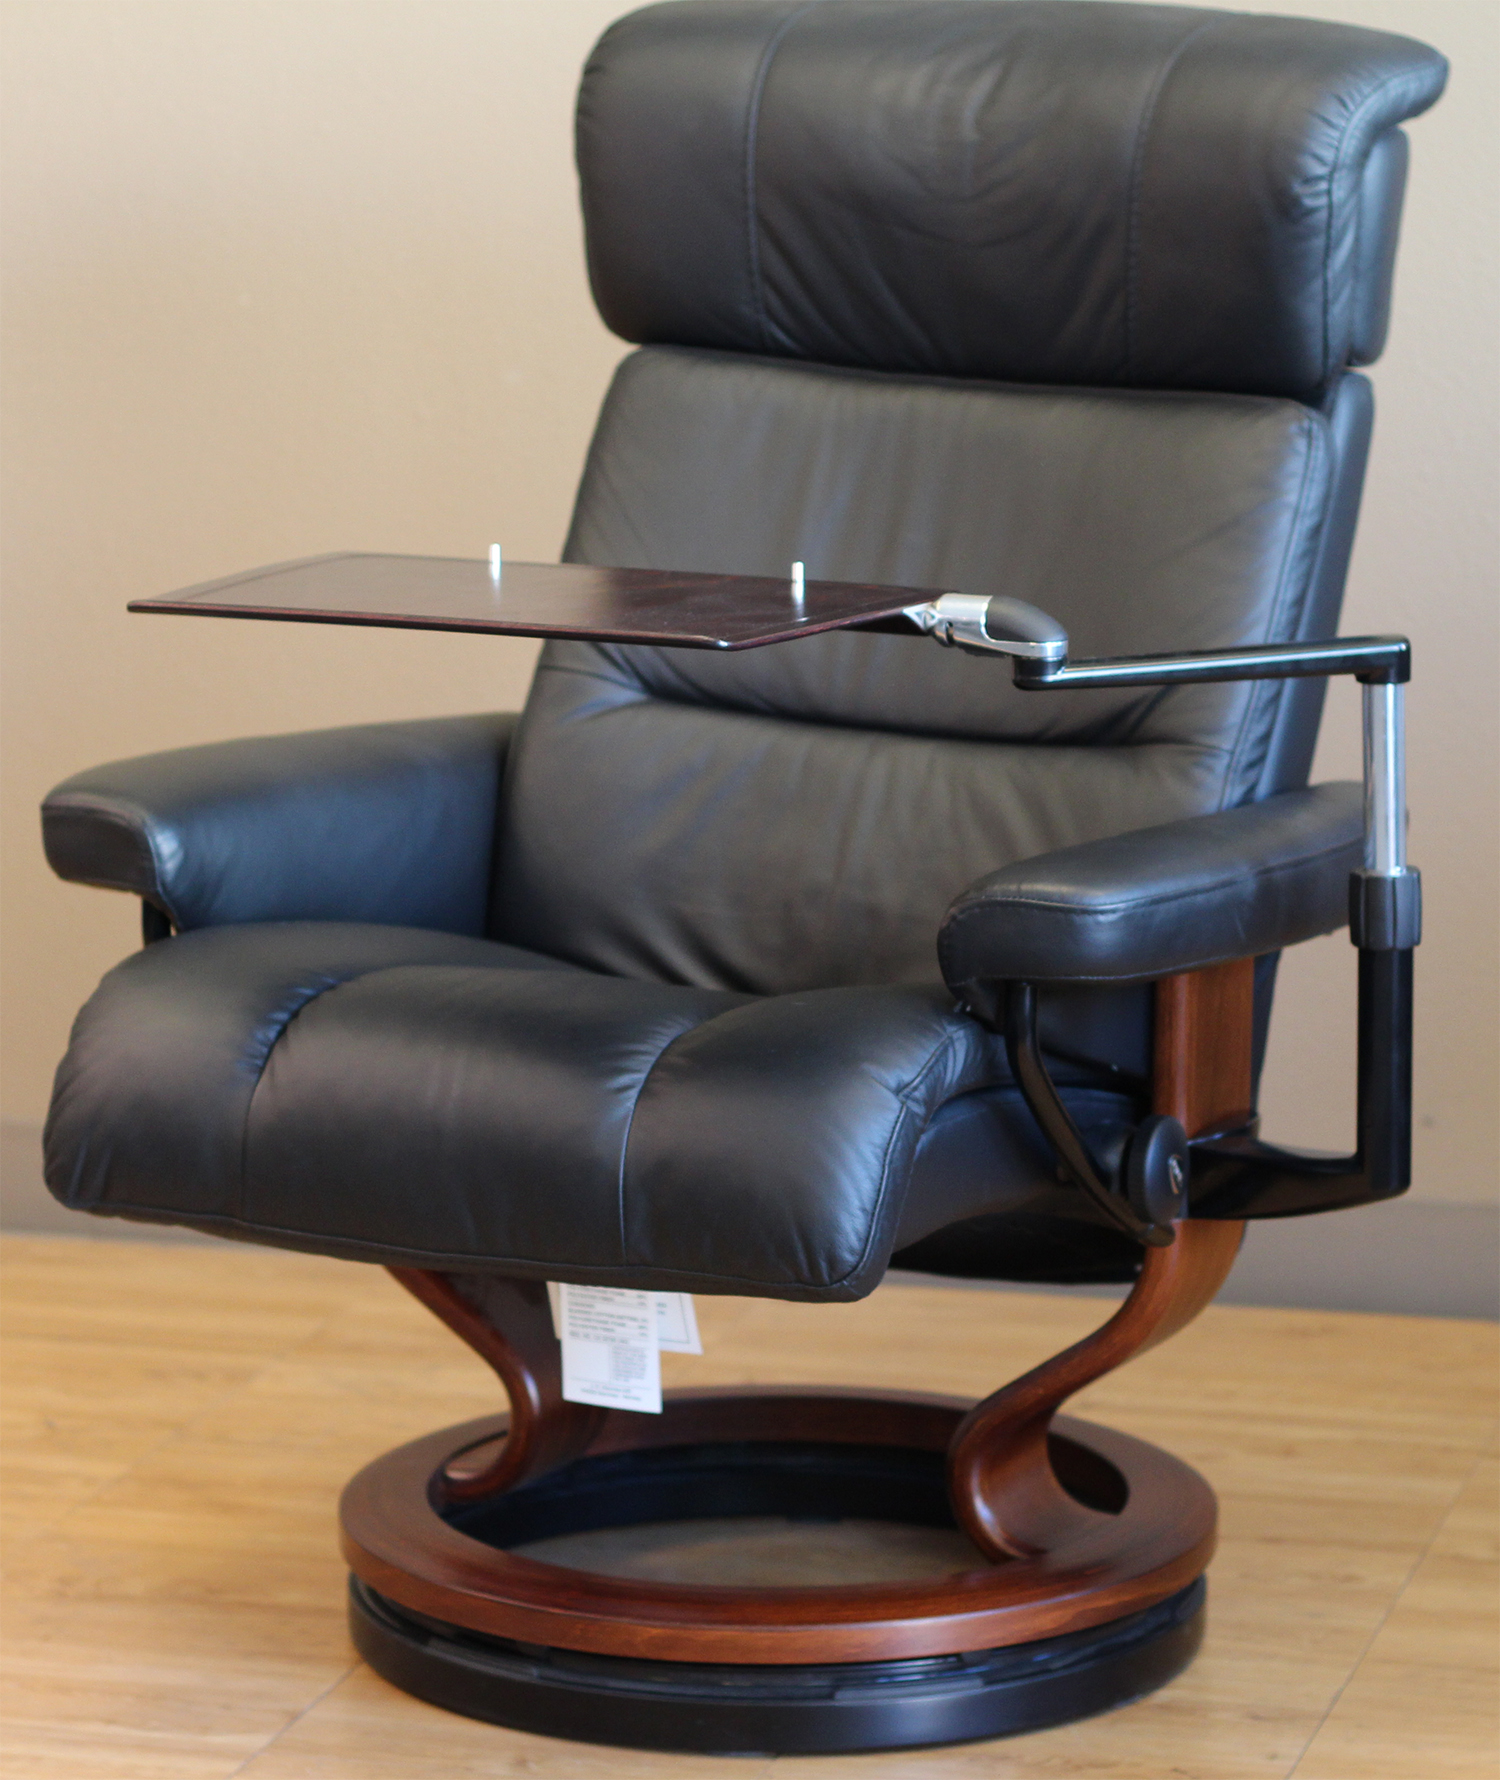 Stressless Personal Computer Laptop Table